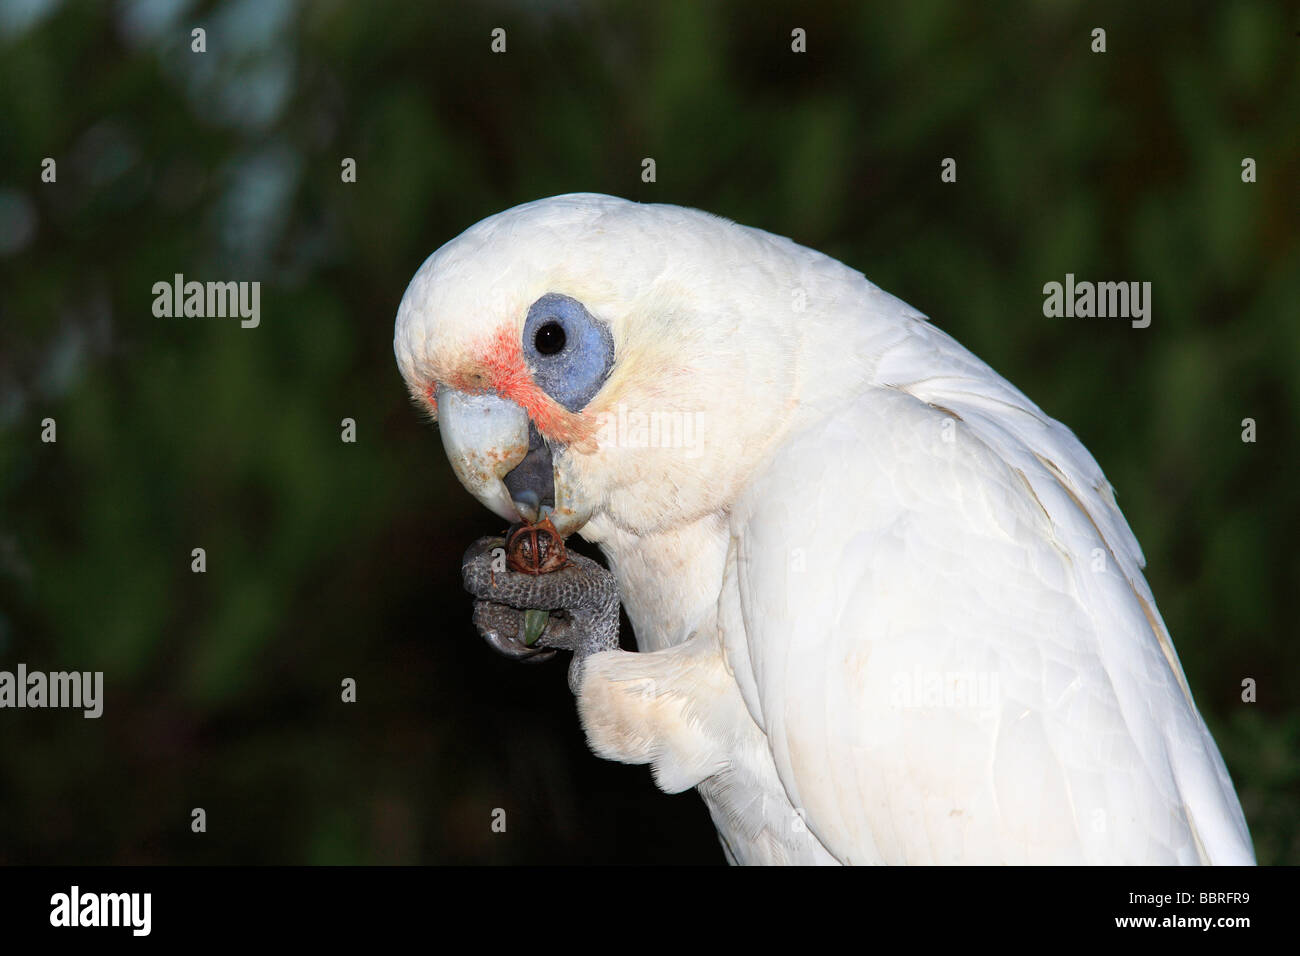 Little Corella, Cacatua sanguinea is an Australian parrot and a member of the cockatoo family. Eating a nut held - Stock Image